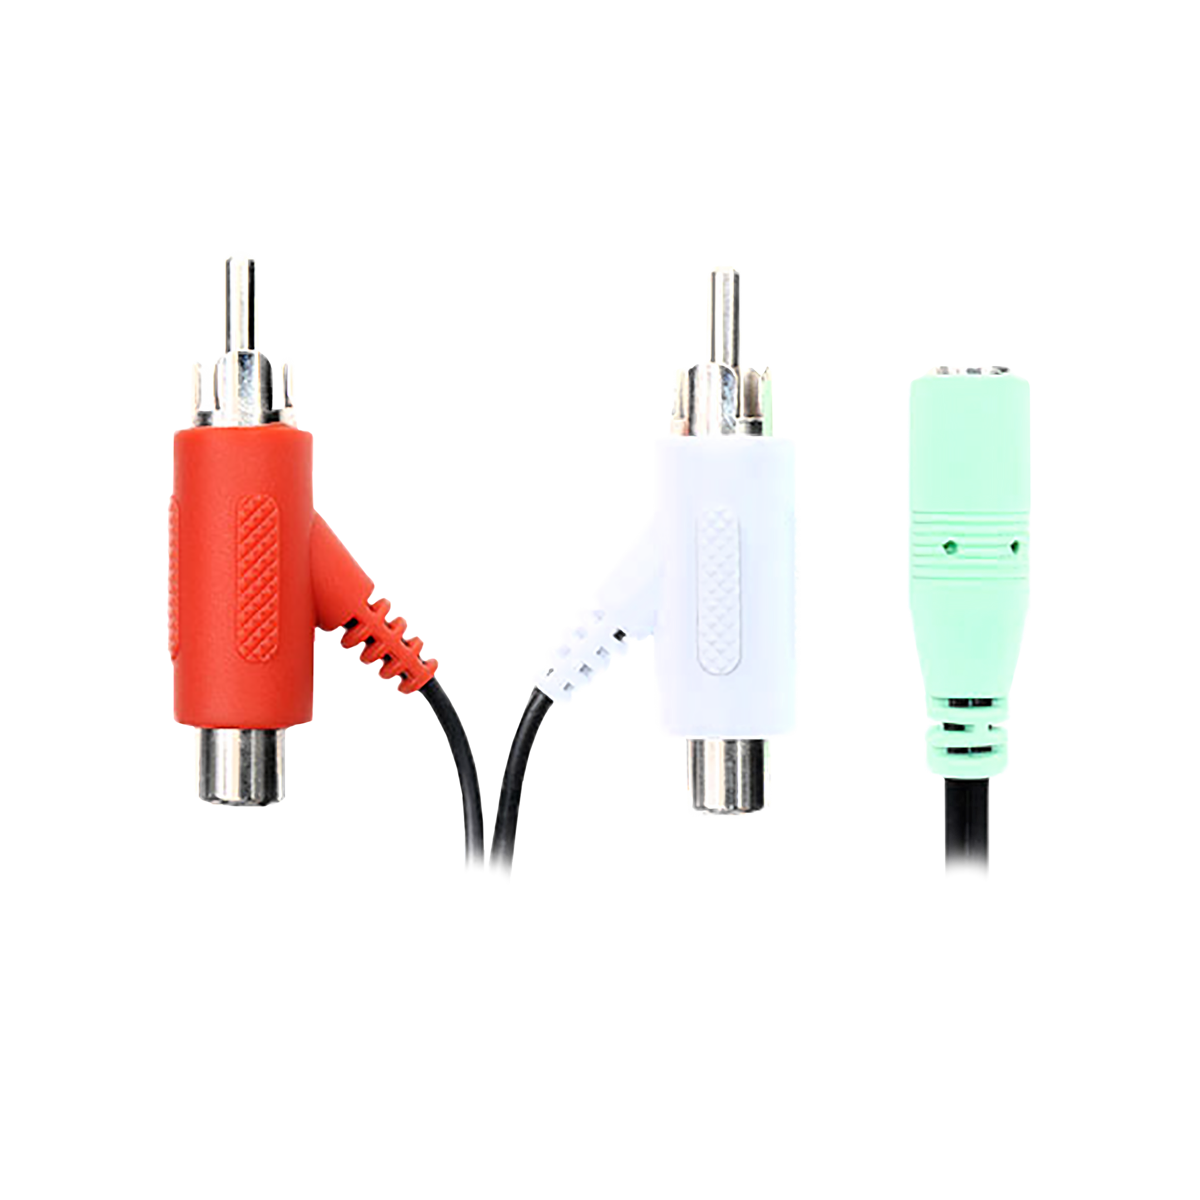 35mm Female To Rca Stereo Splitter Cable Turtle Beach Us Audio Kabel Aux Male Jack 2 X 35 Mm For Xbox 360 And Ps3 Kilo P11 Px21 Px22 X12 X11 X1 Px1 Foxtrot Converts The Plug Dual